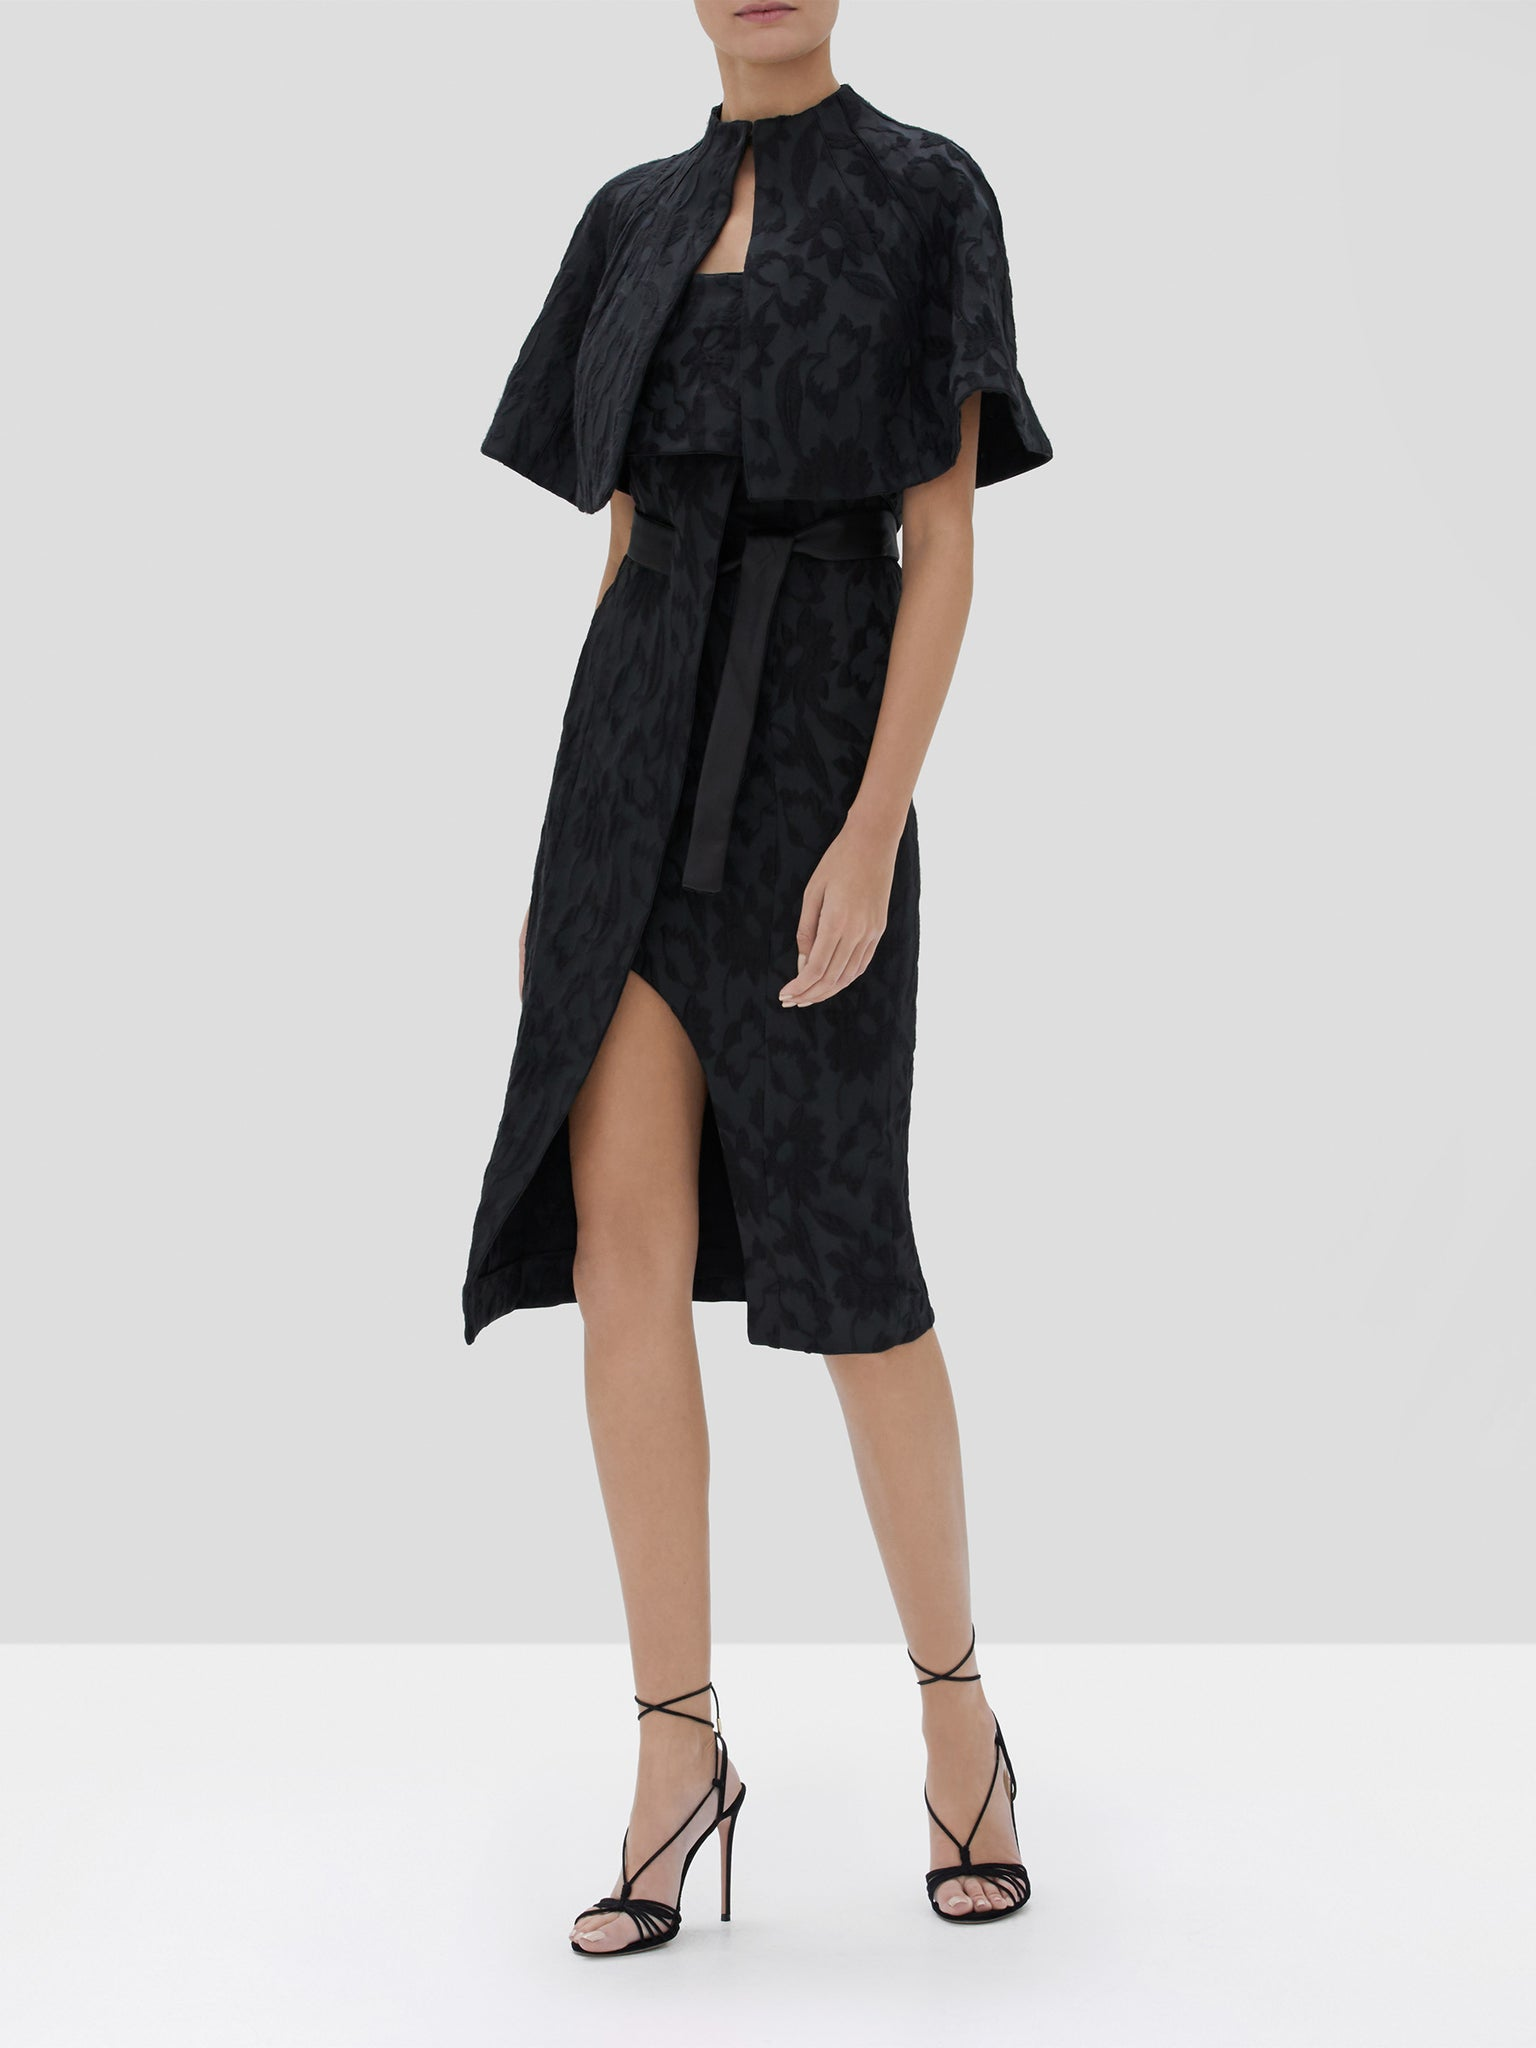 Alexis Fiah Cape and Isotta Dress in Black Floral Jacquard from the Fall Winter 2019 Collection